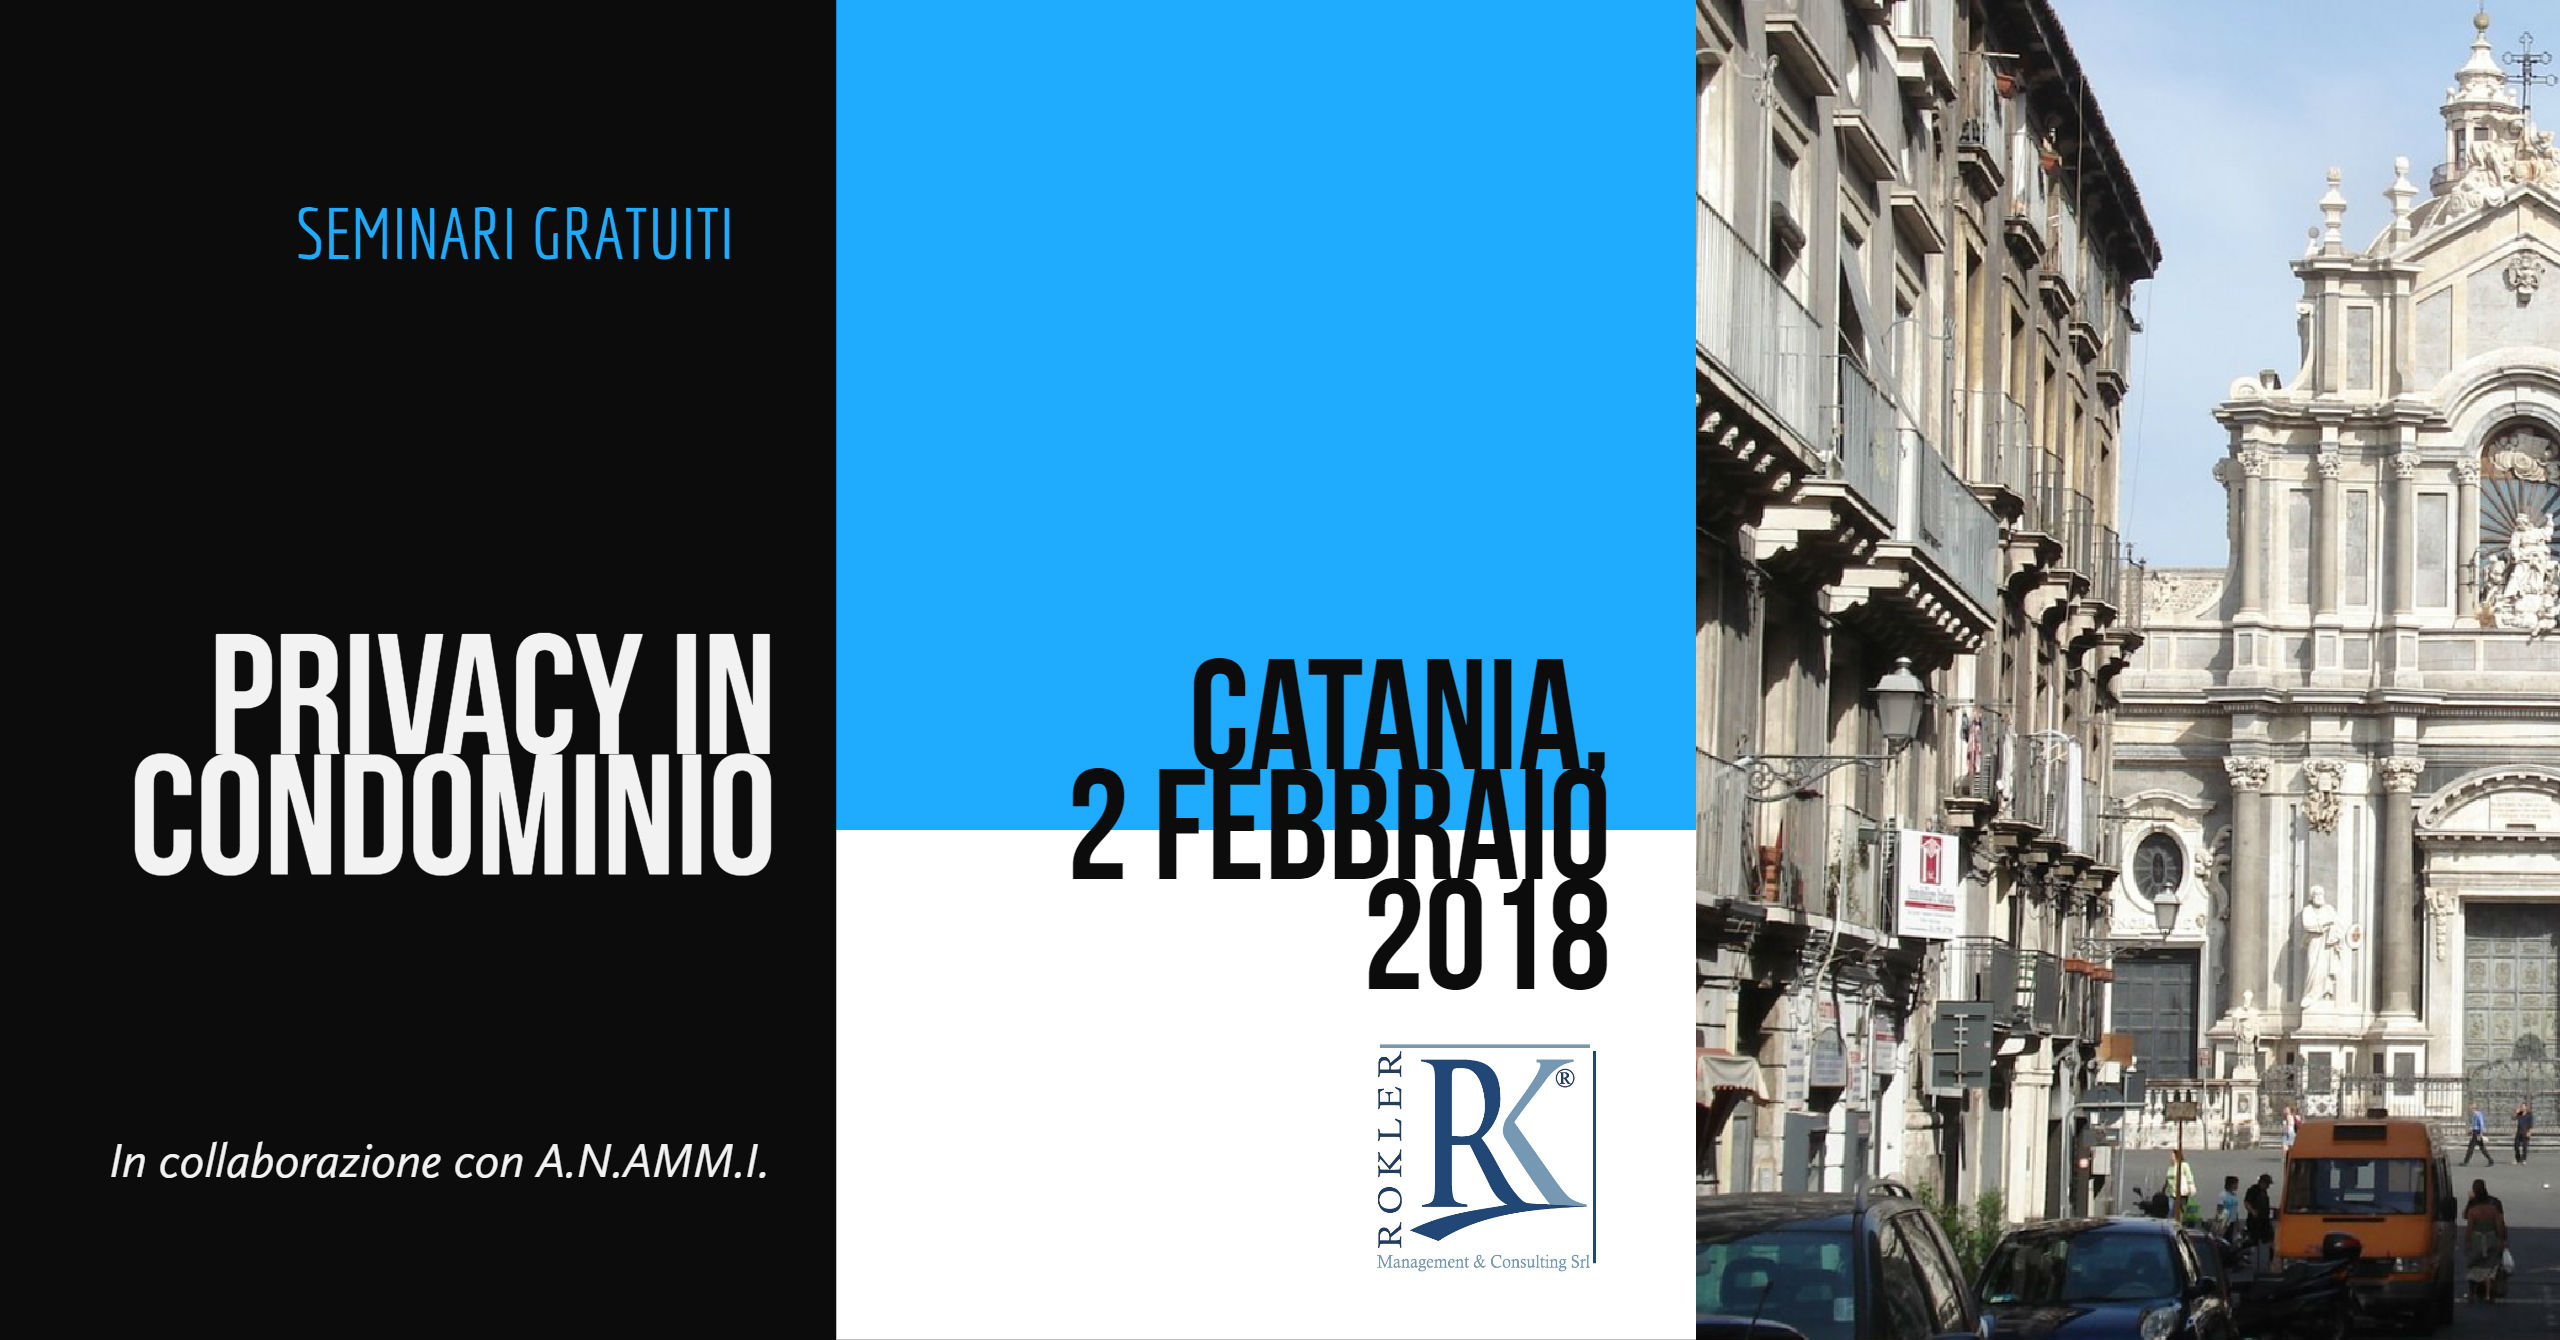 Privacy in condominio - Rokler e Anammi - Catania 2018